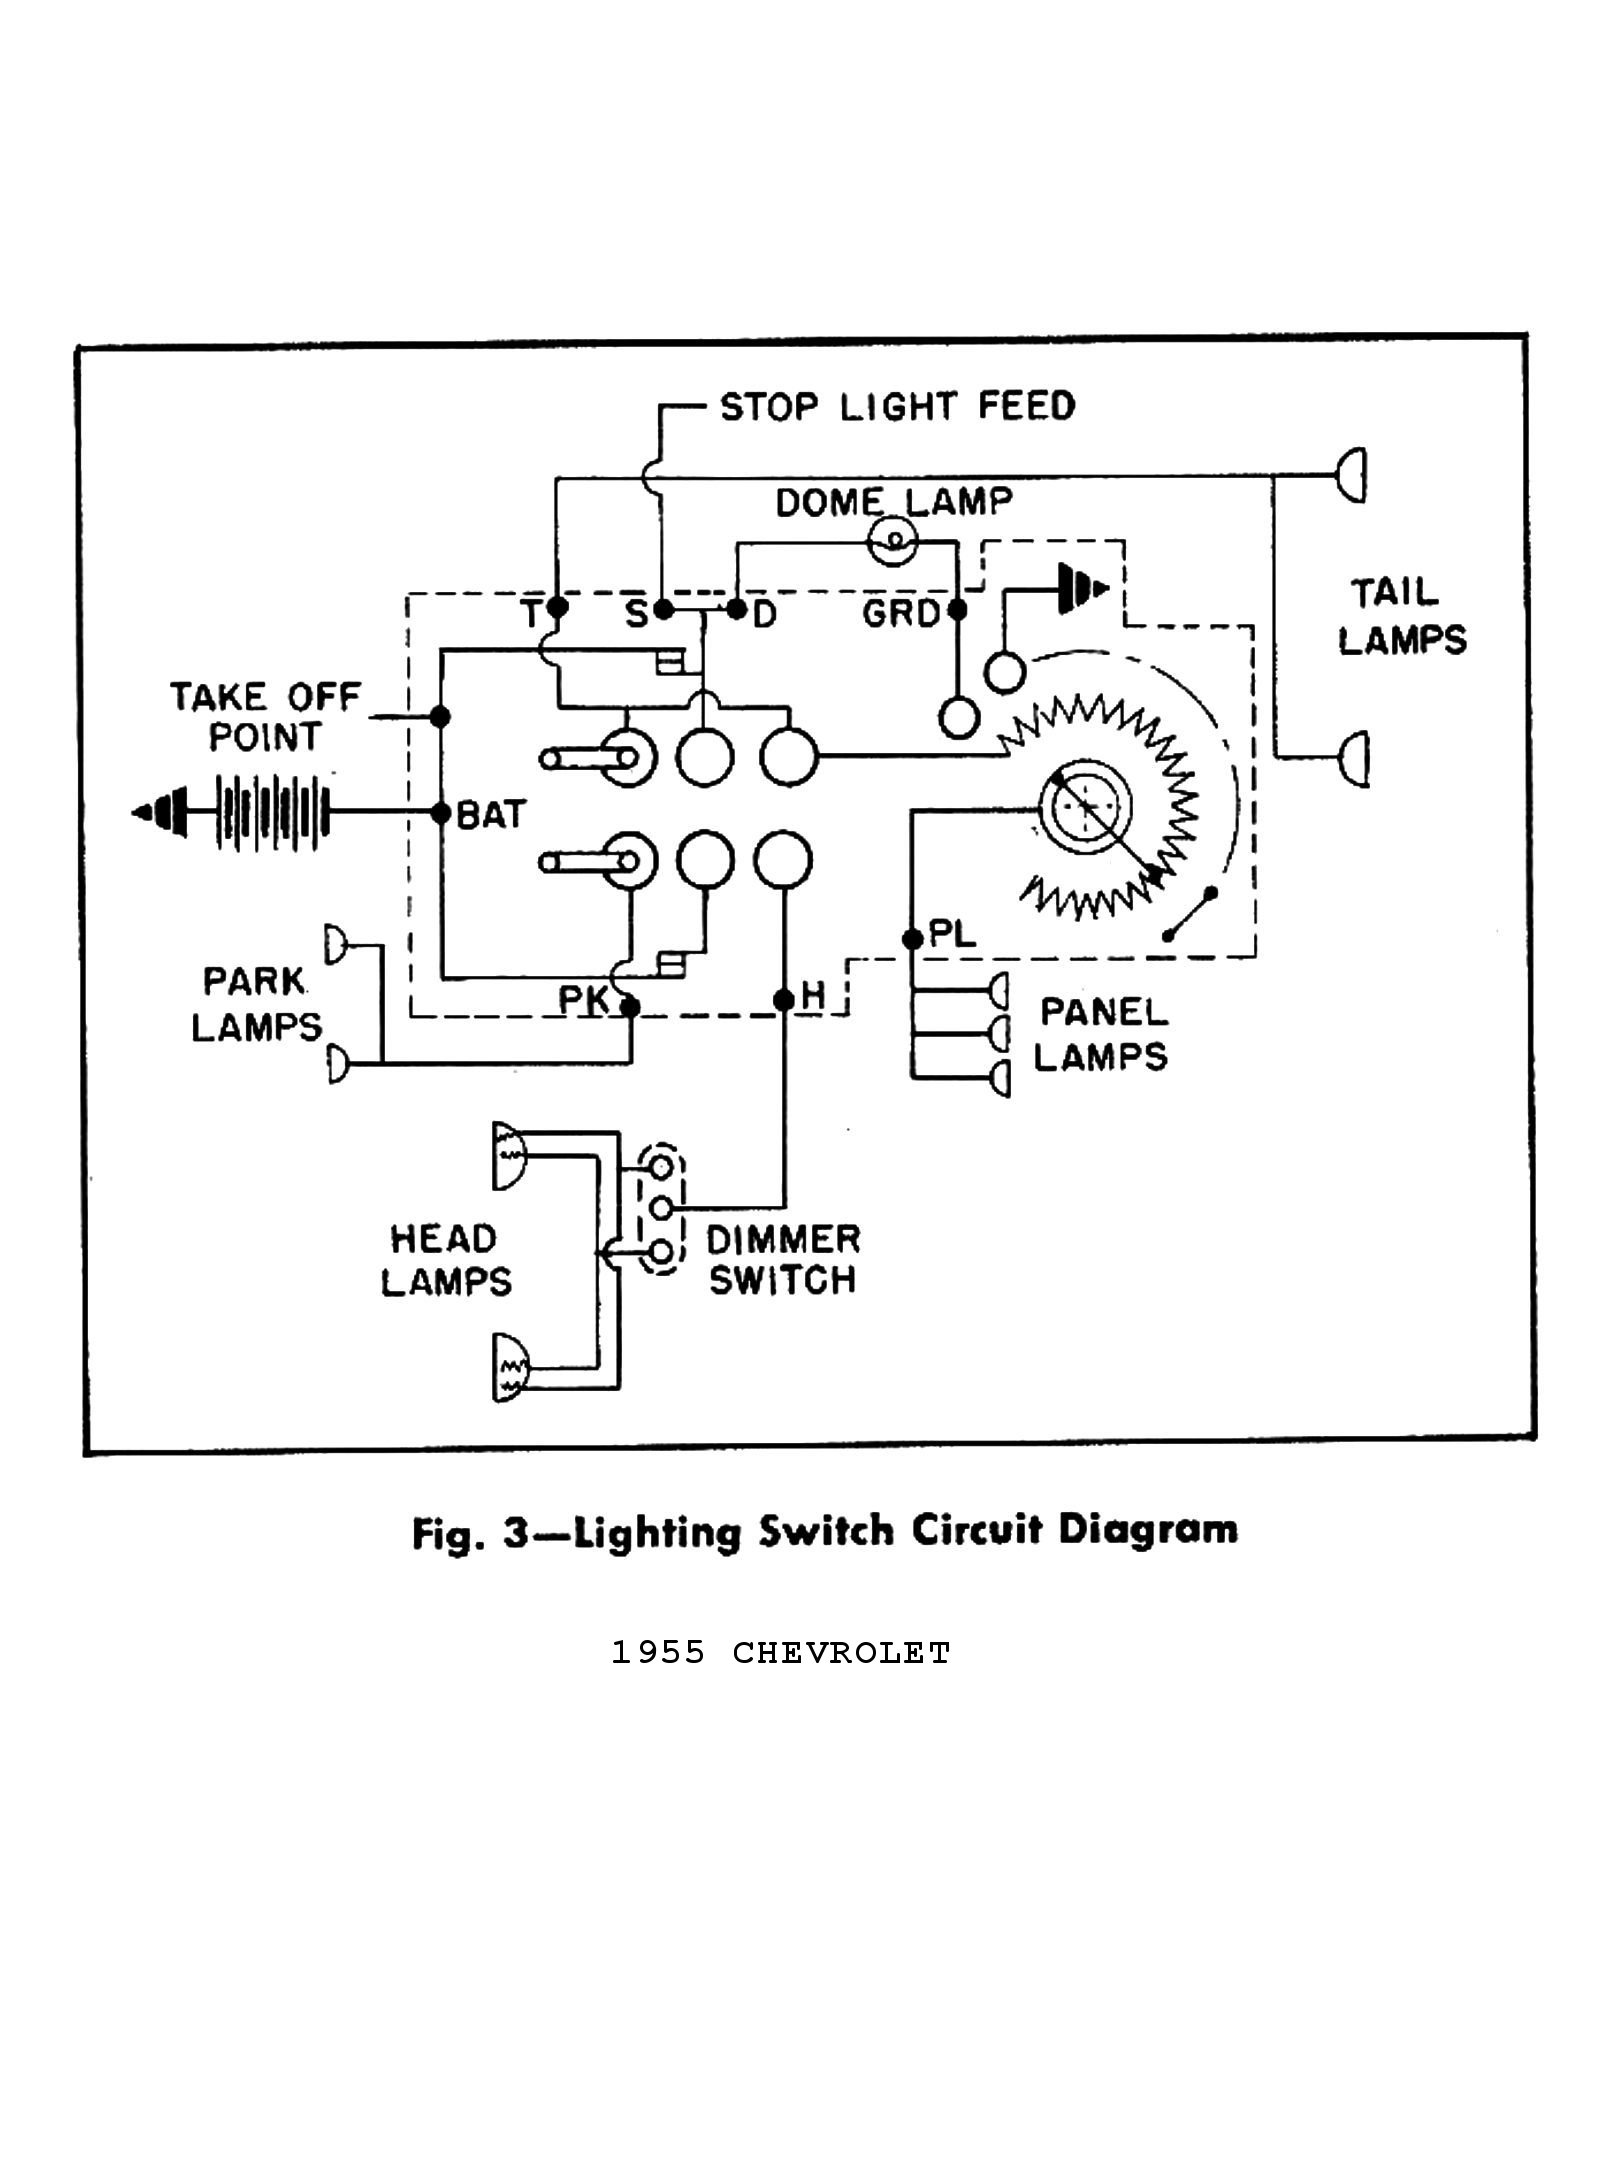 Chevy wiring harness diagram get free image